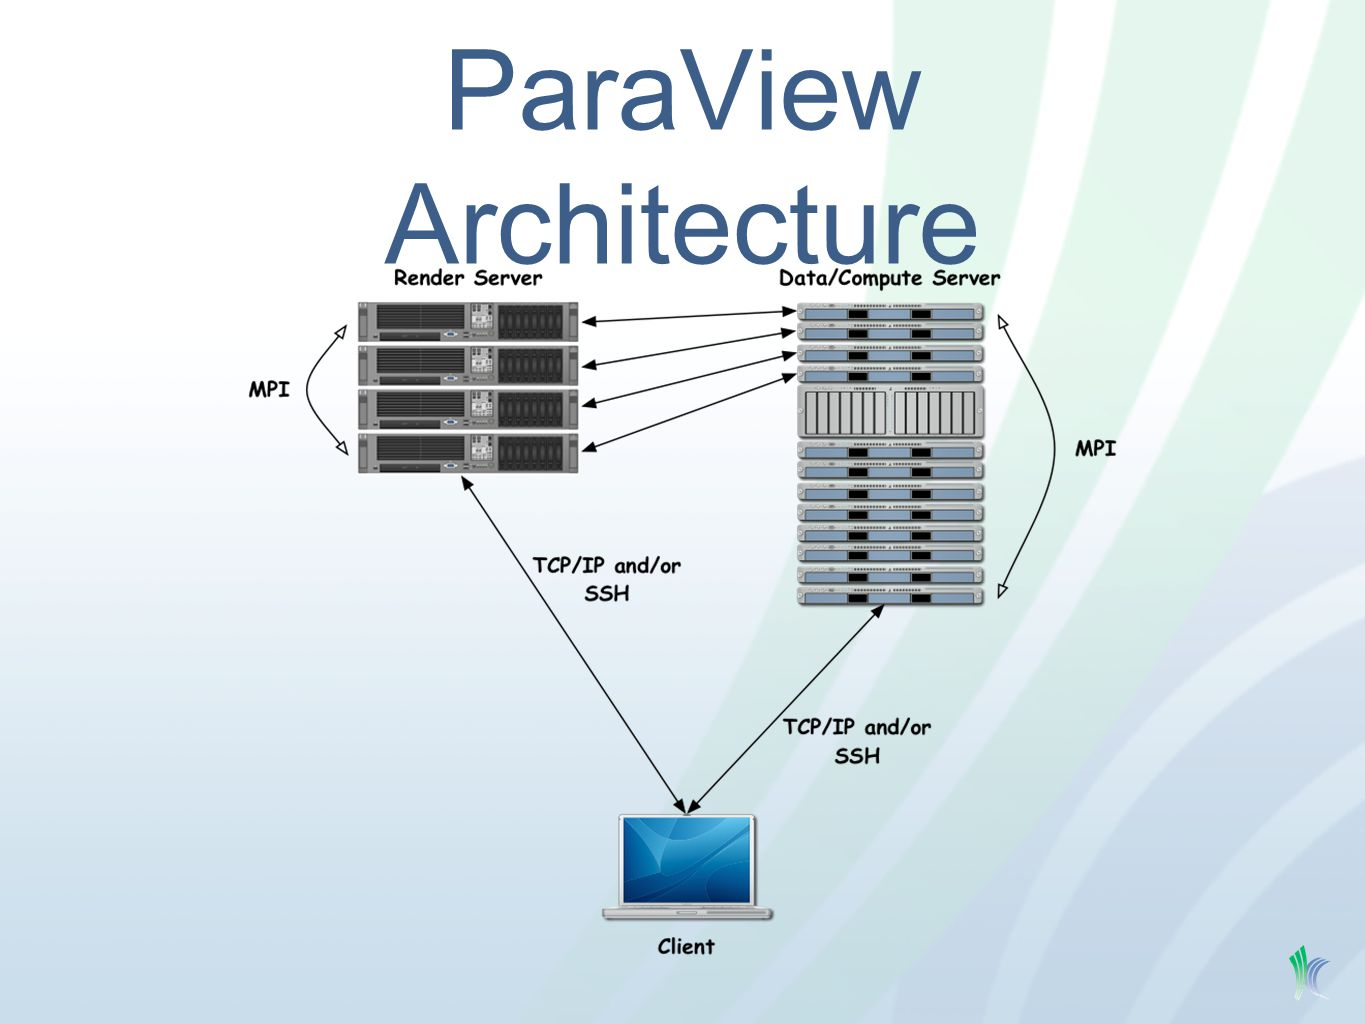 ParaView Architecture